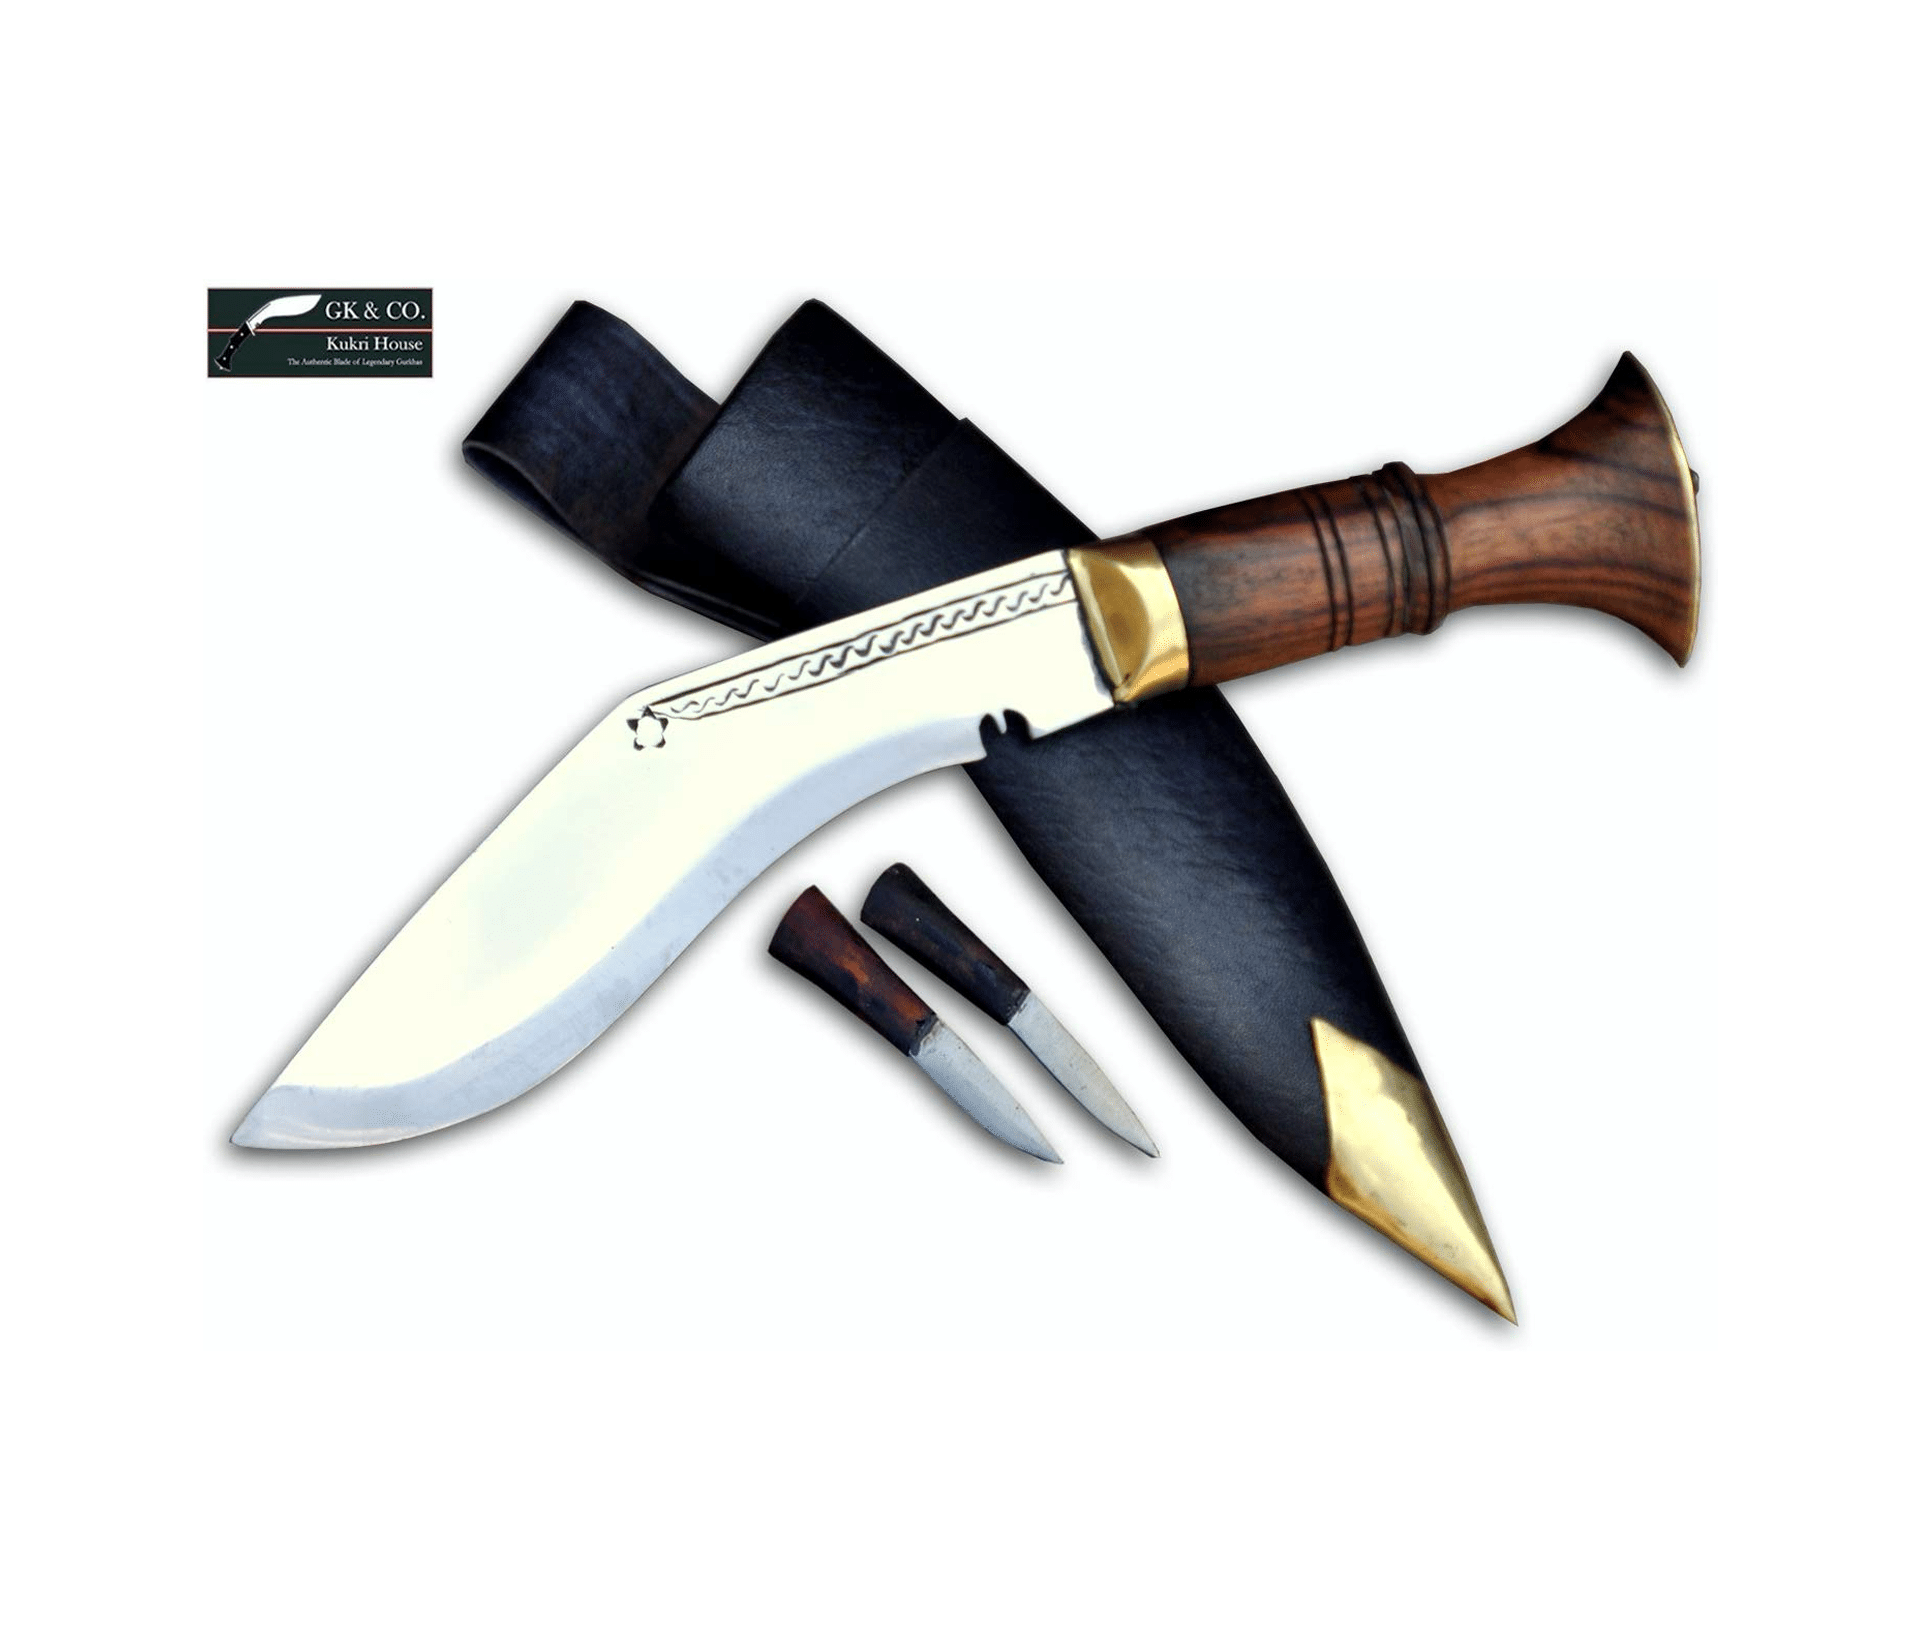 Authentic Gurkha Kukri